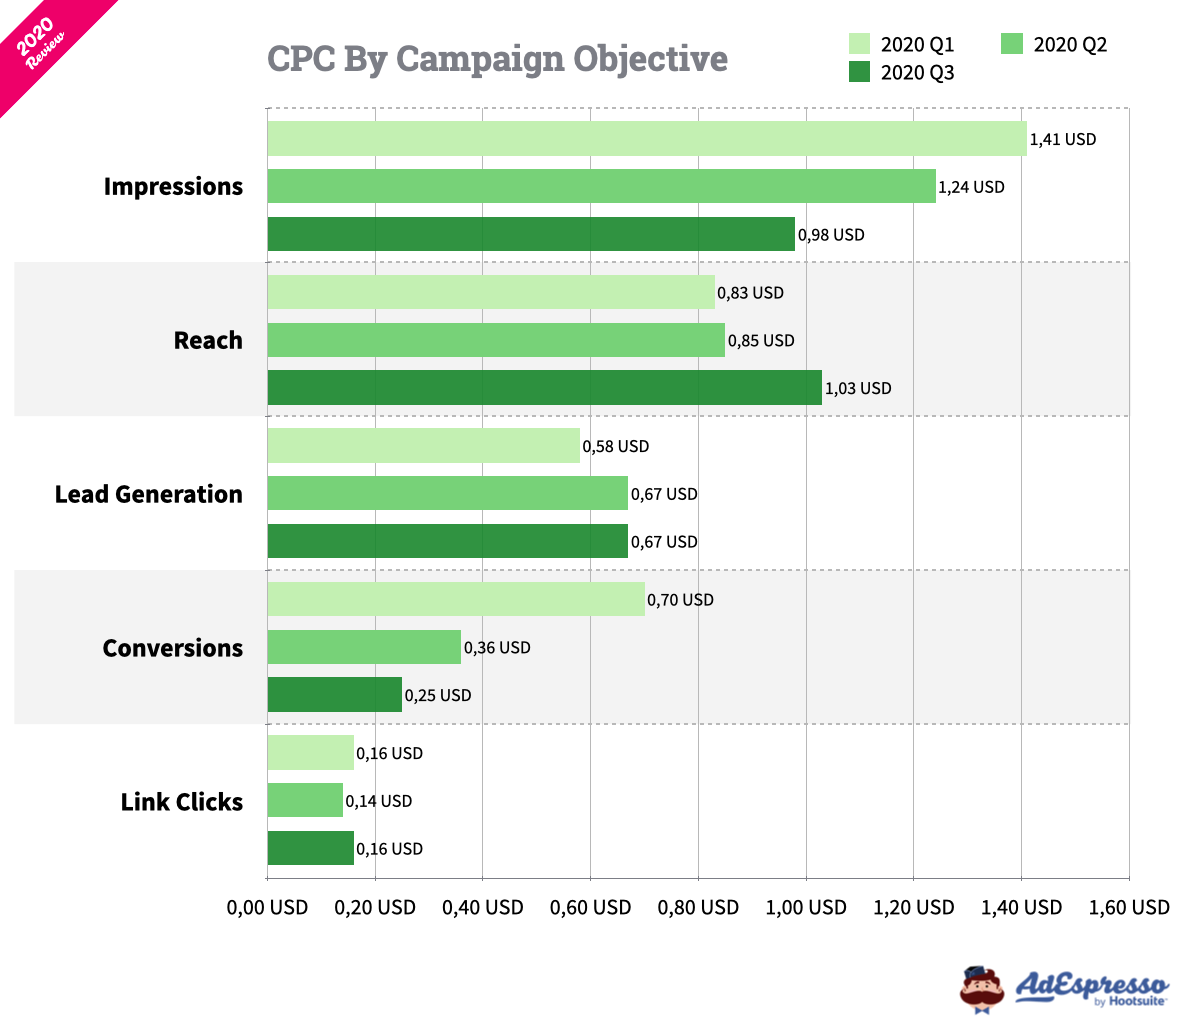 Average Facebook CPC by Campaign Objective